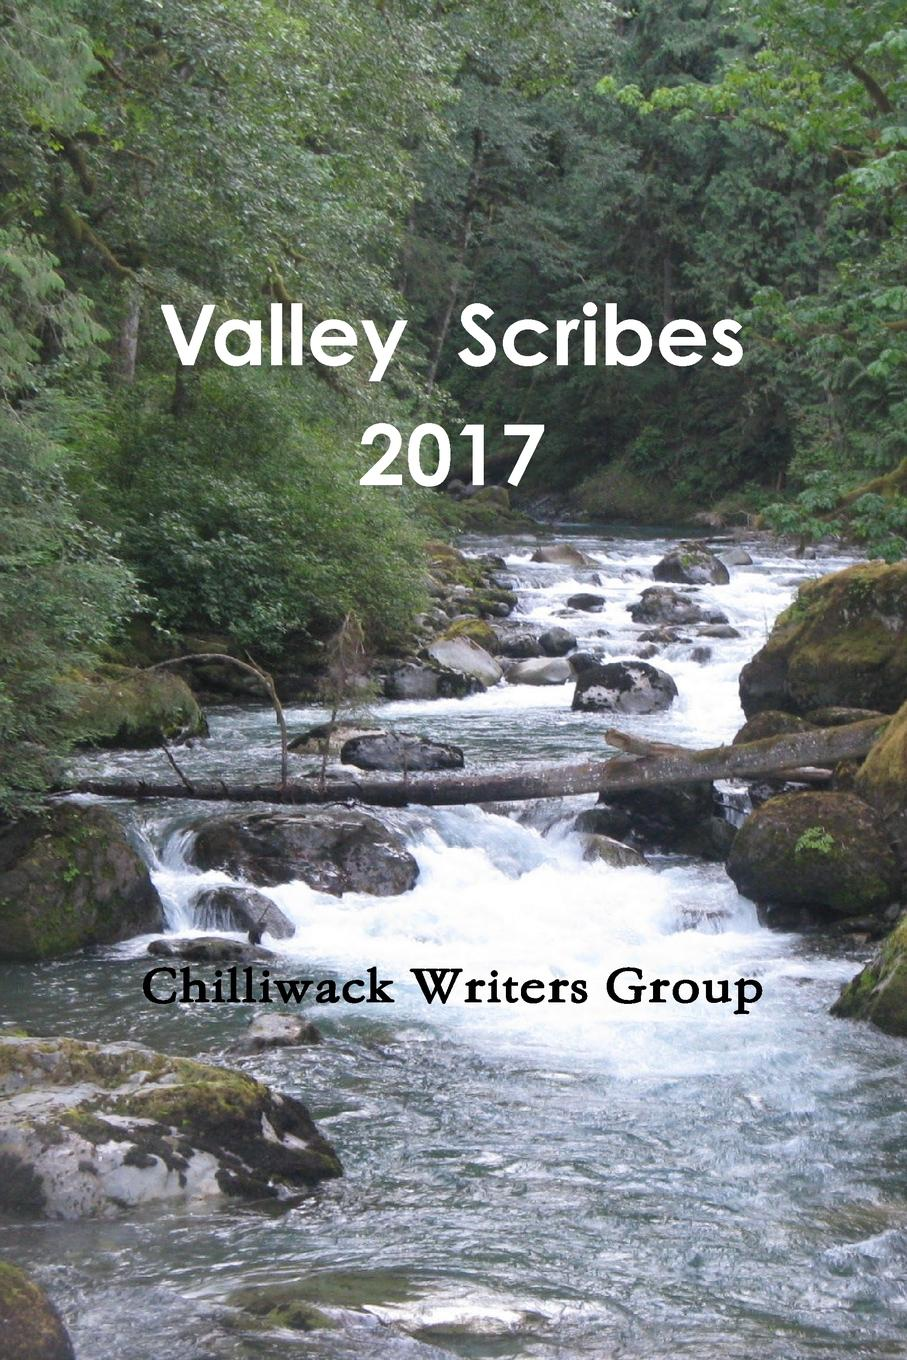 Chilliwack Writers Group Valley Scribes 2017